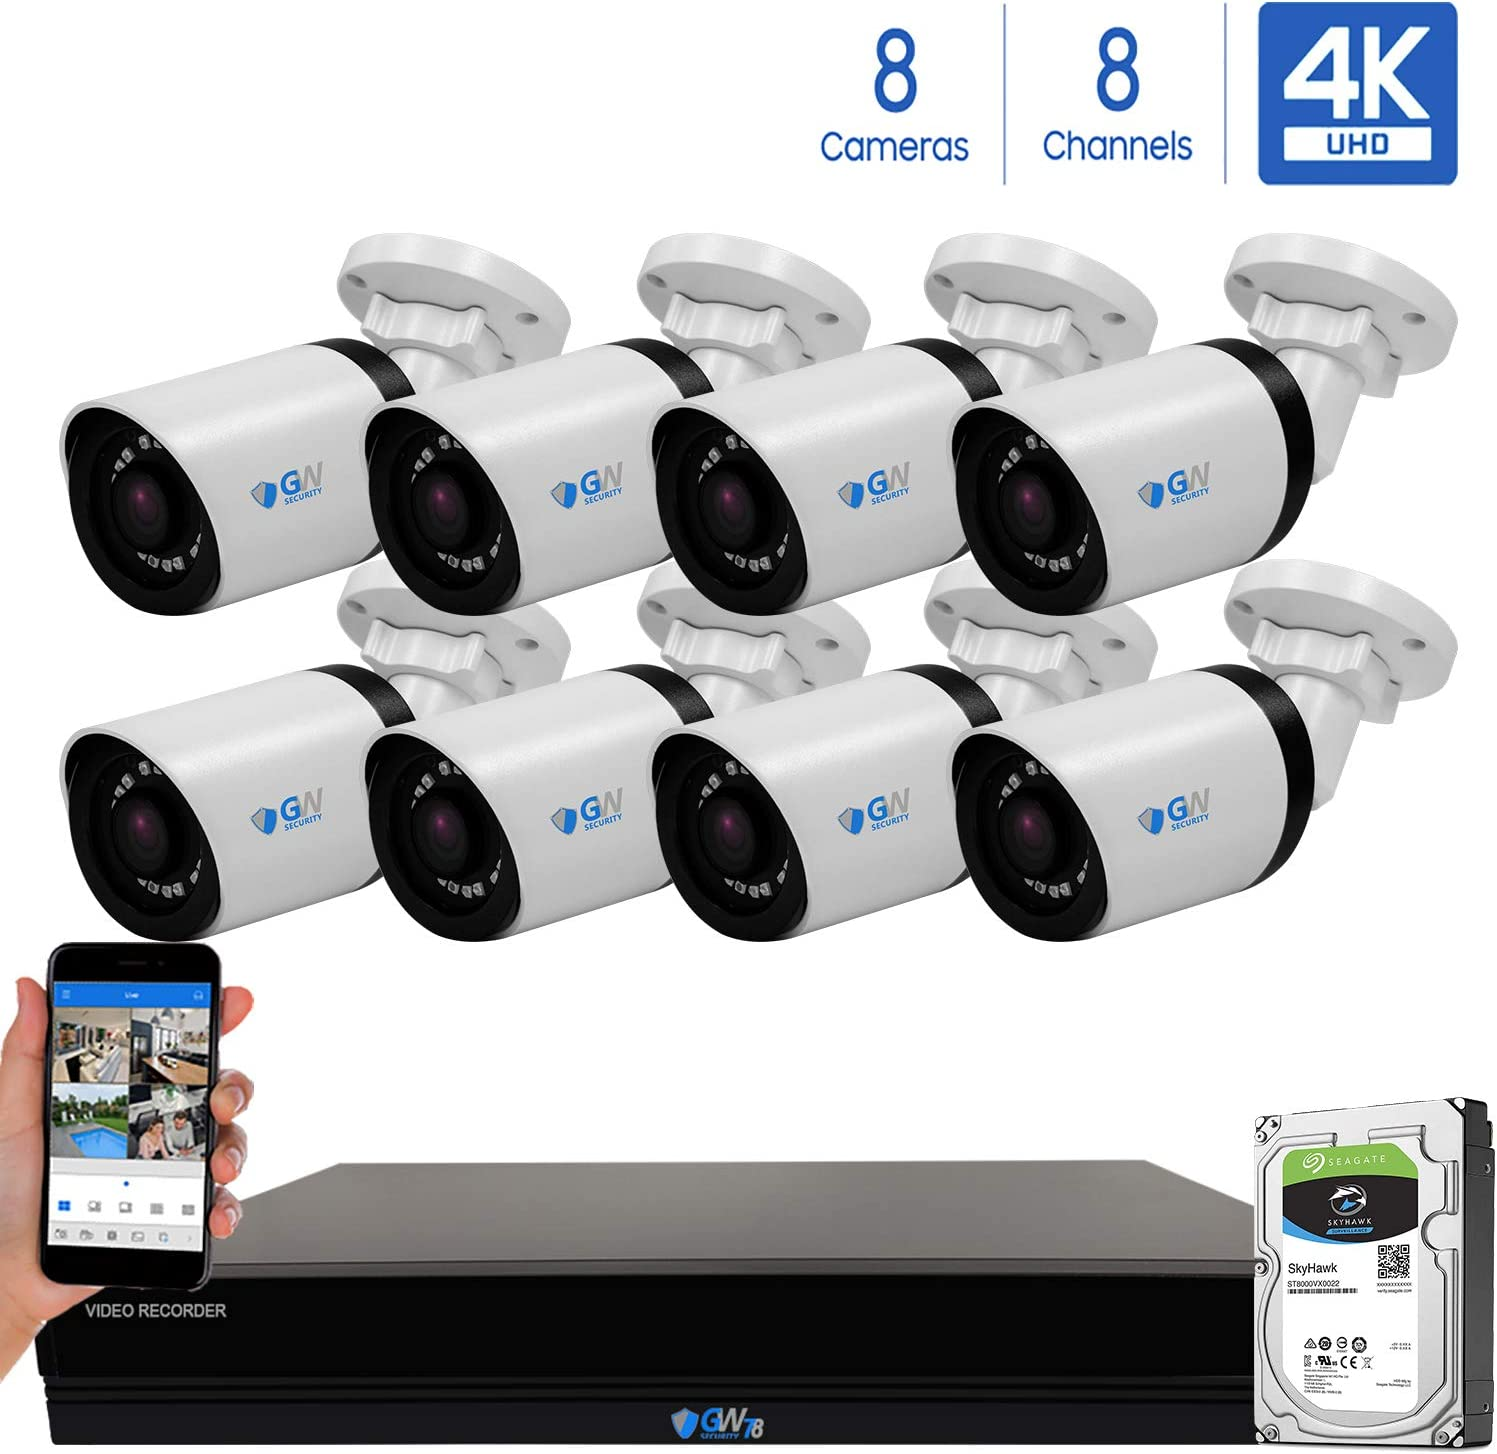 GW 8 Channel 4K H.265 CCTV DVR Security System with 8 x HD 8MP 2160P Outdoor Indoor 4K Bullet Security Cameras, 100ft Night Vision, 3TB Hard Drive Pre-Installed